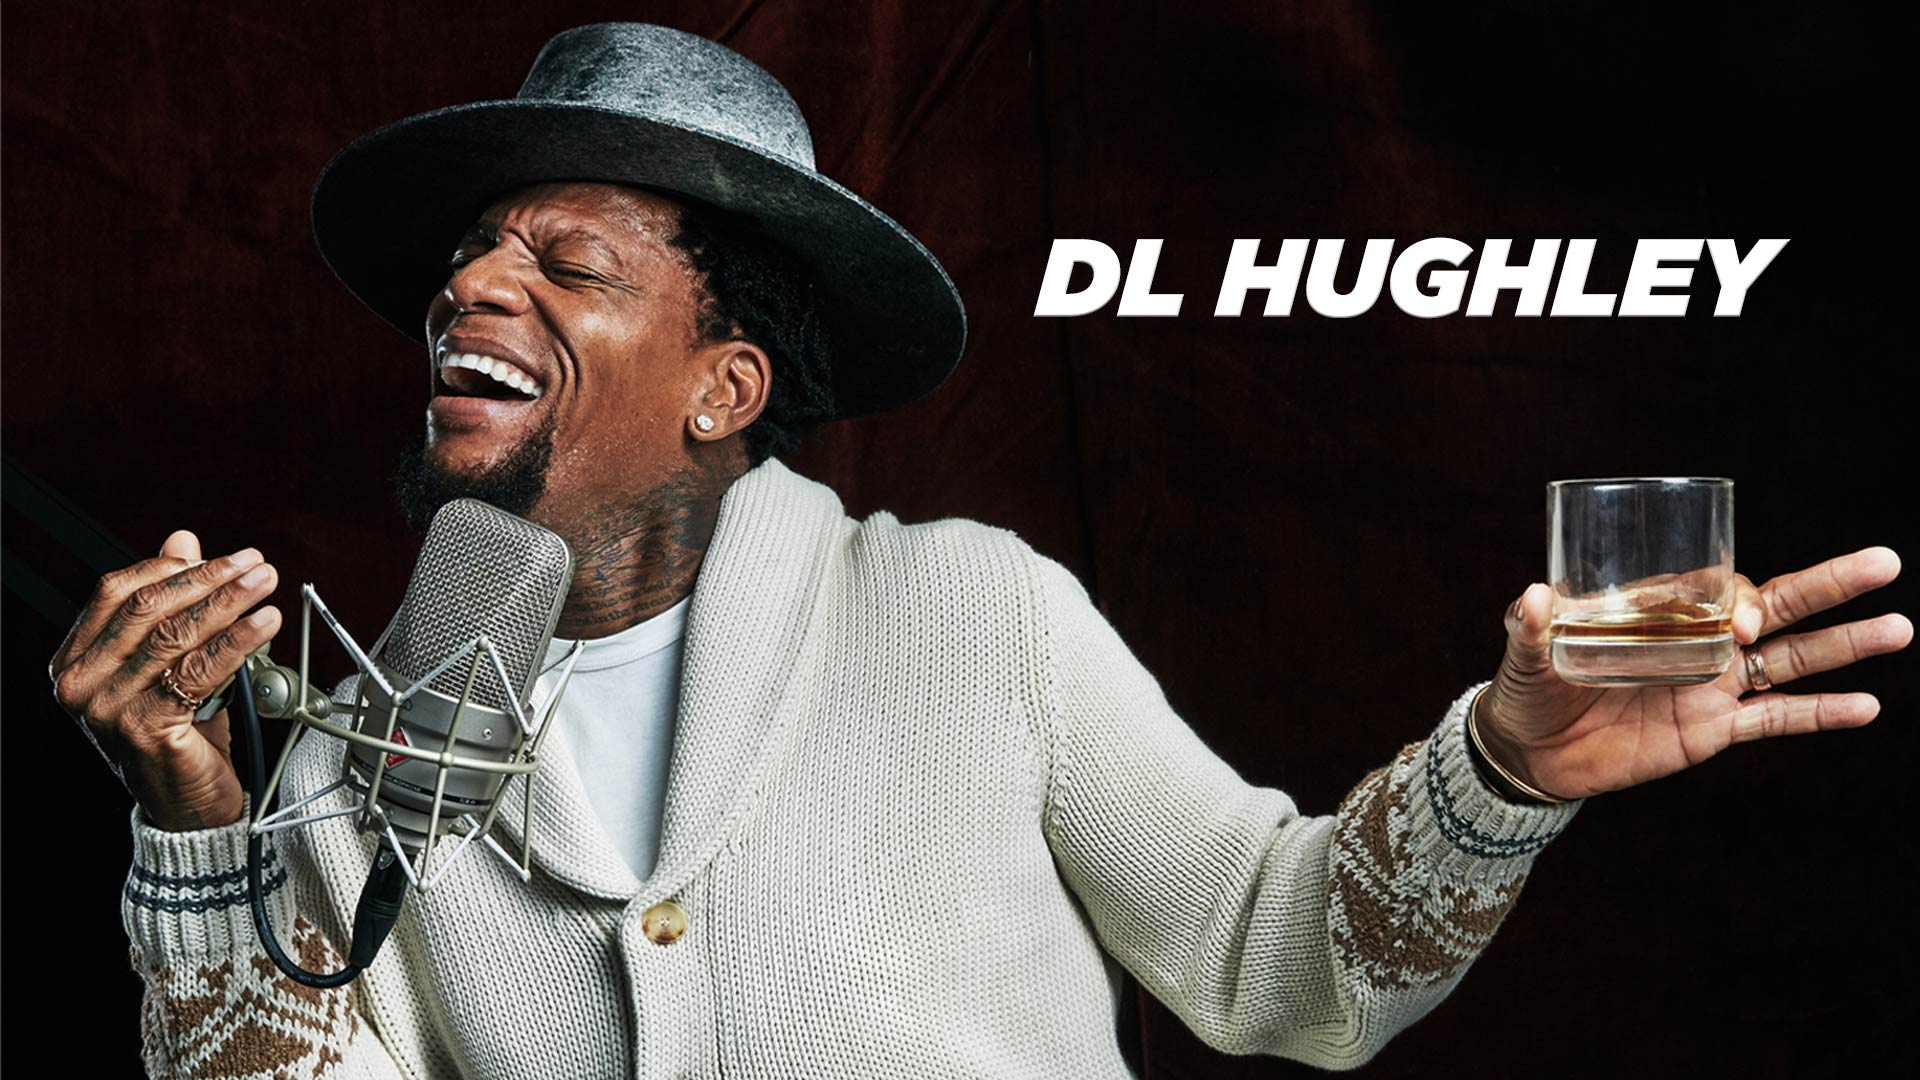 D.L. Hughley, comedy, stand up comedy, capital one hall, capital one center, things to do in DC, comedian, Tysons